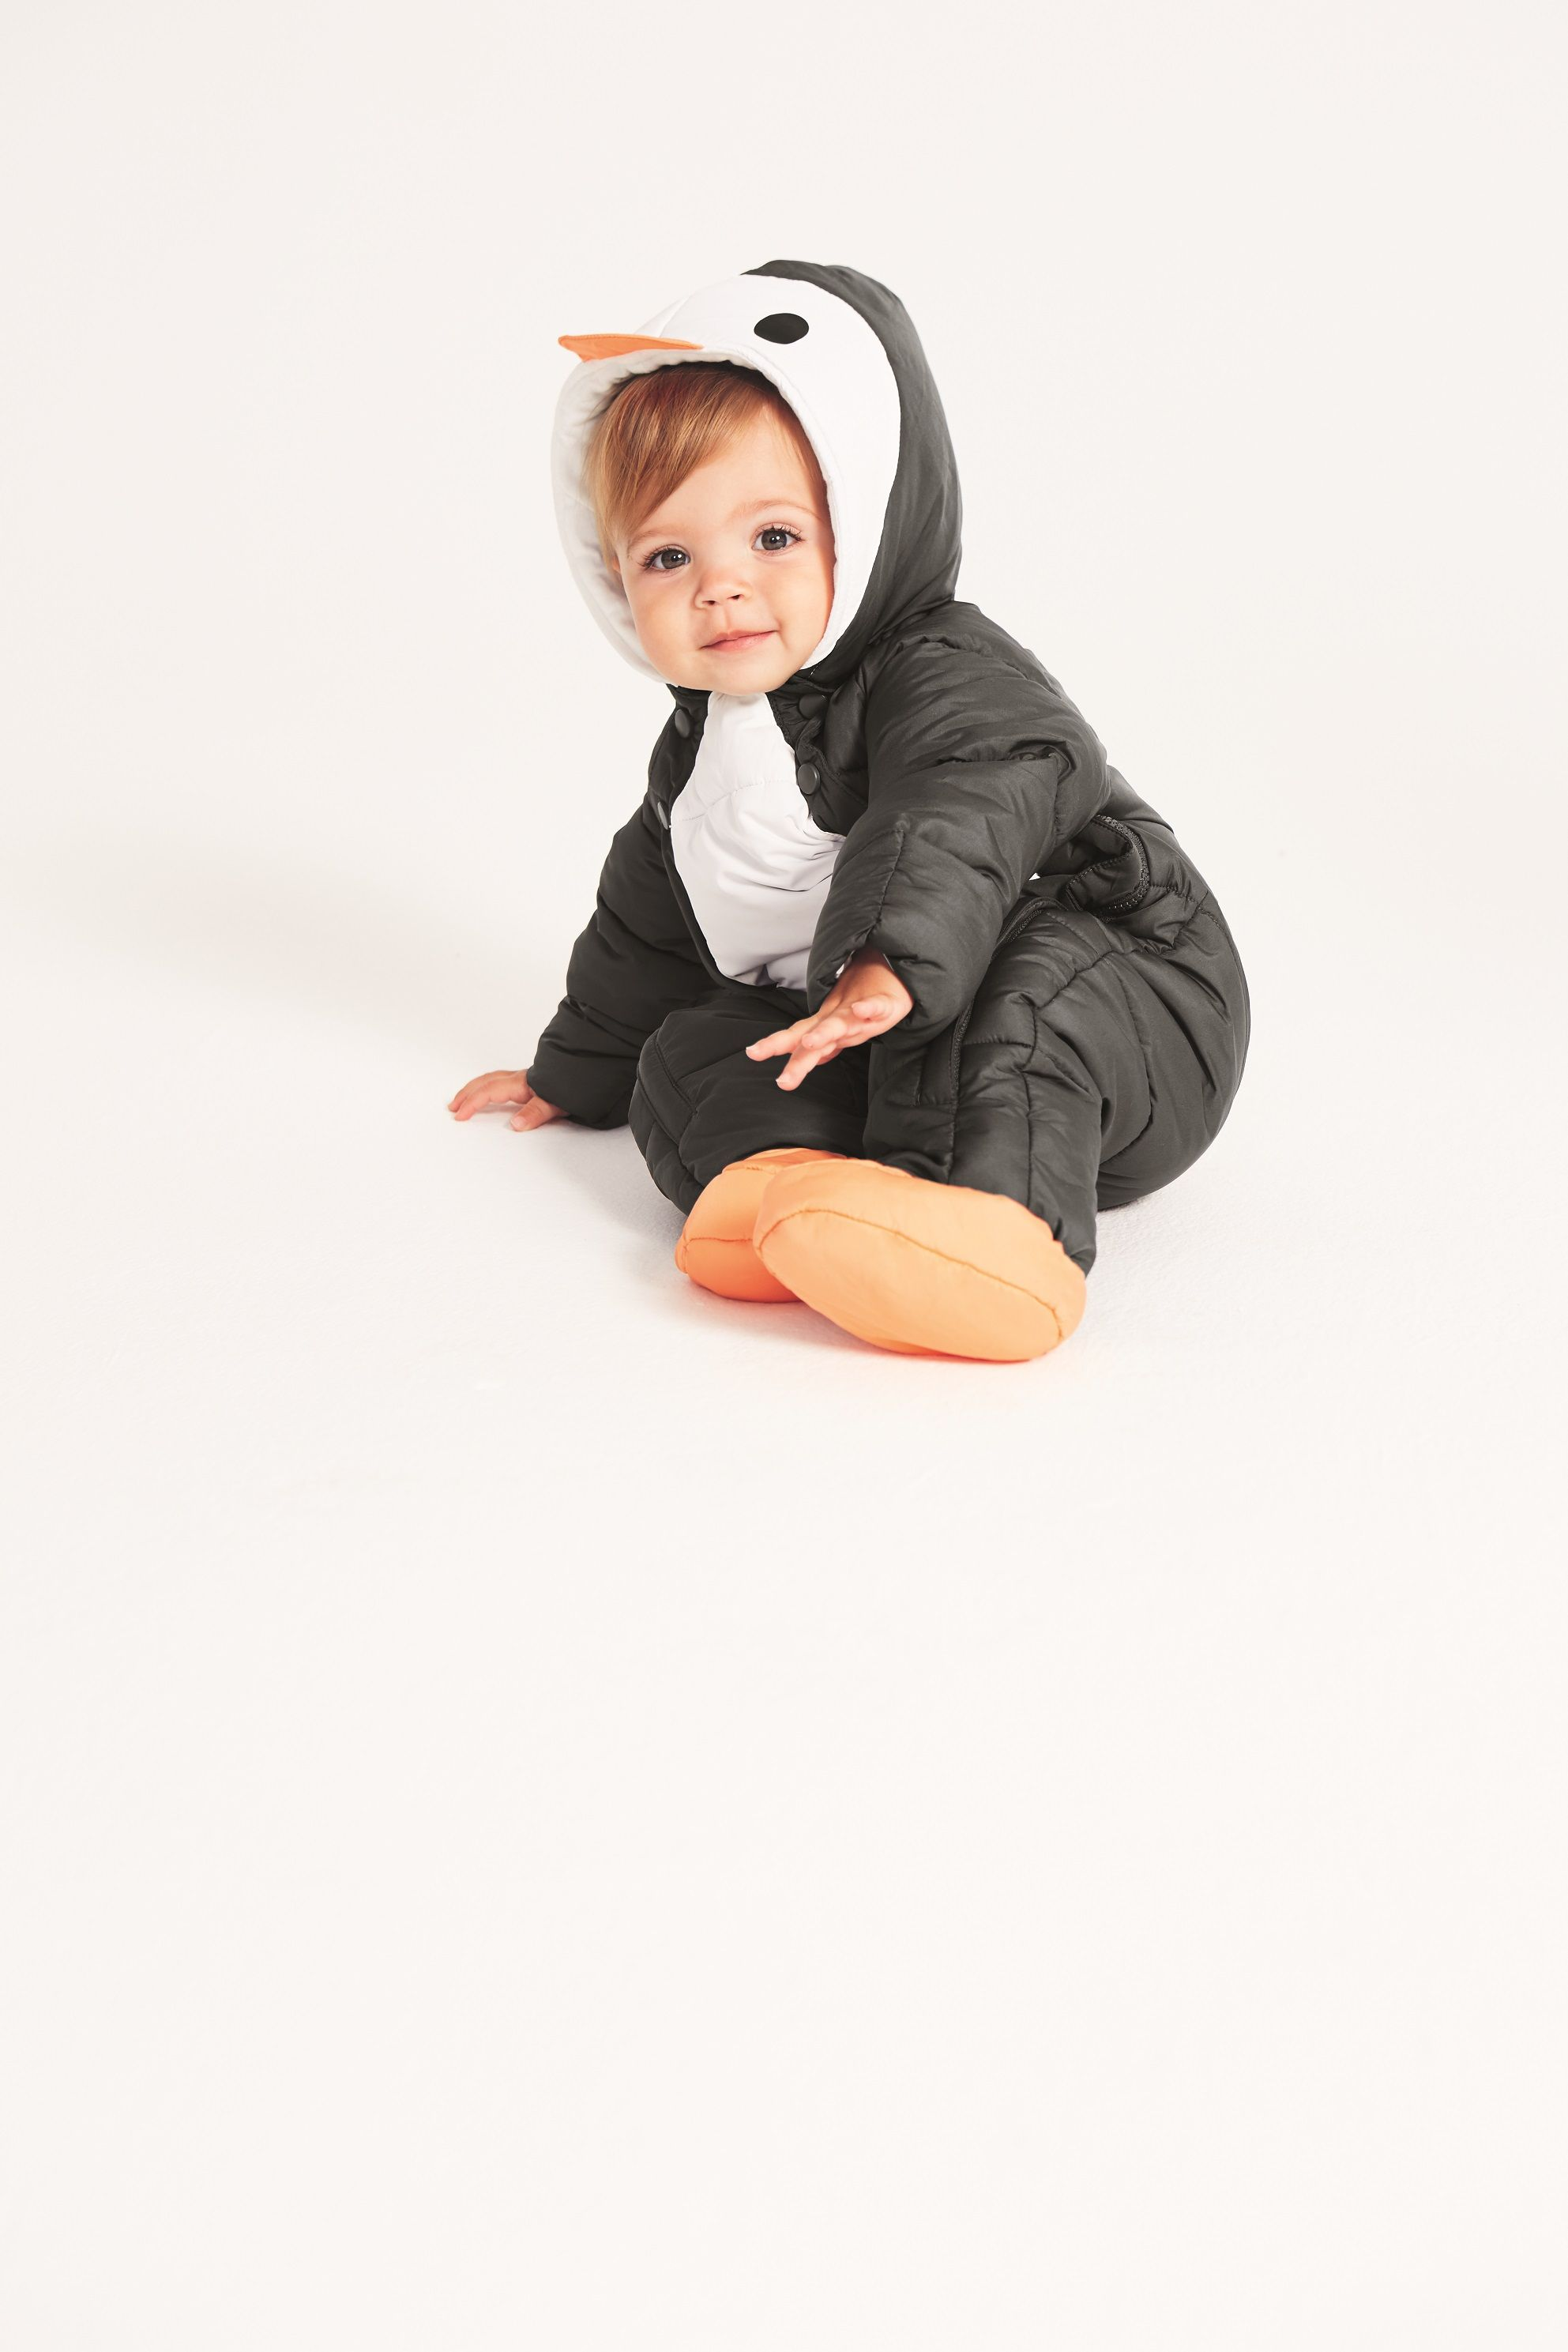 925fefa99 Perfect for outdoors adventures as the weather turns colder, this snowsuit  is padded to keep them extra warm and snug.